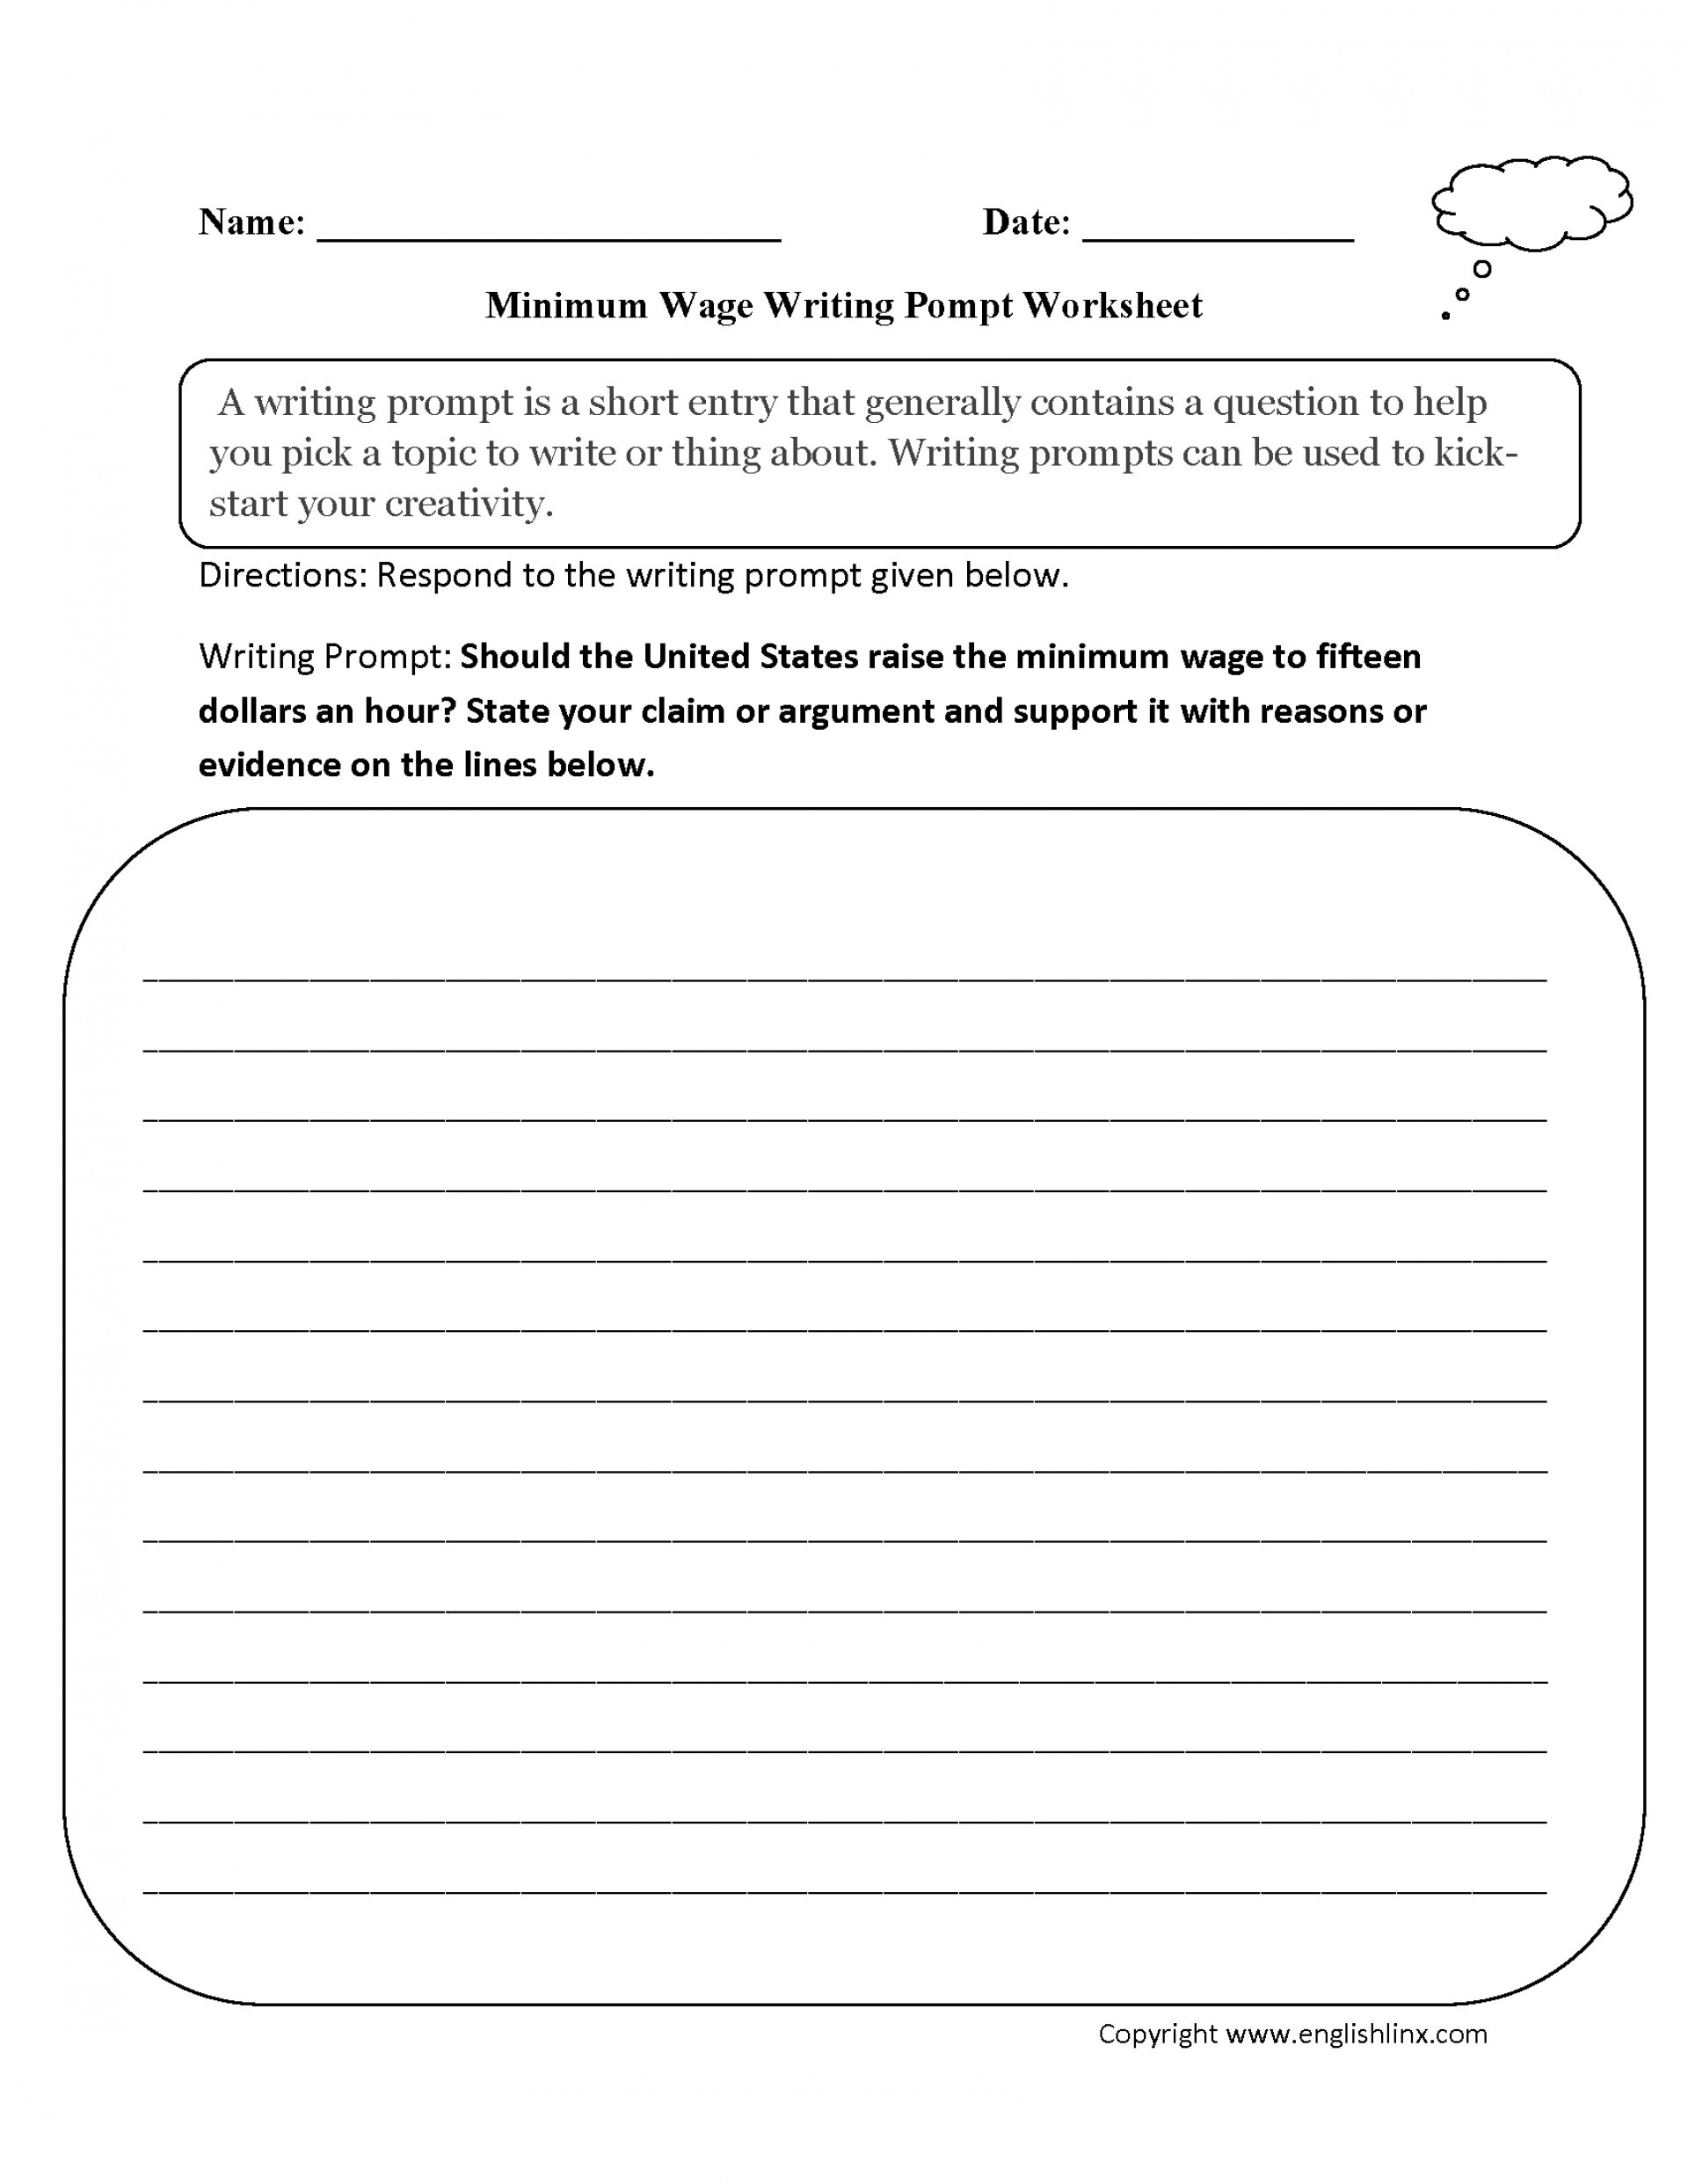 Creative Writing Worksheets High School 013 Argumentative Essay Writing Worksheets the Best Image